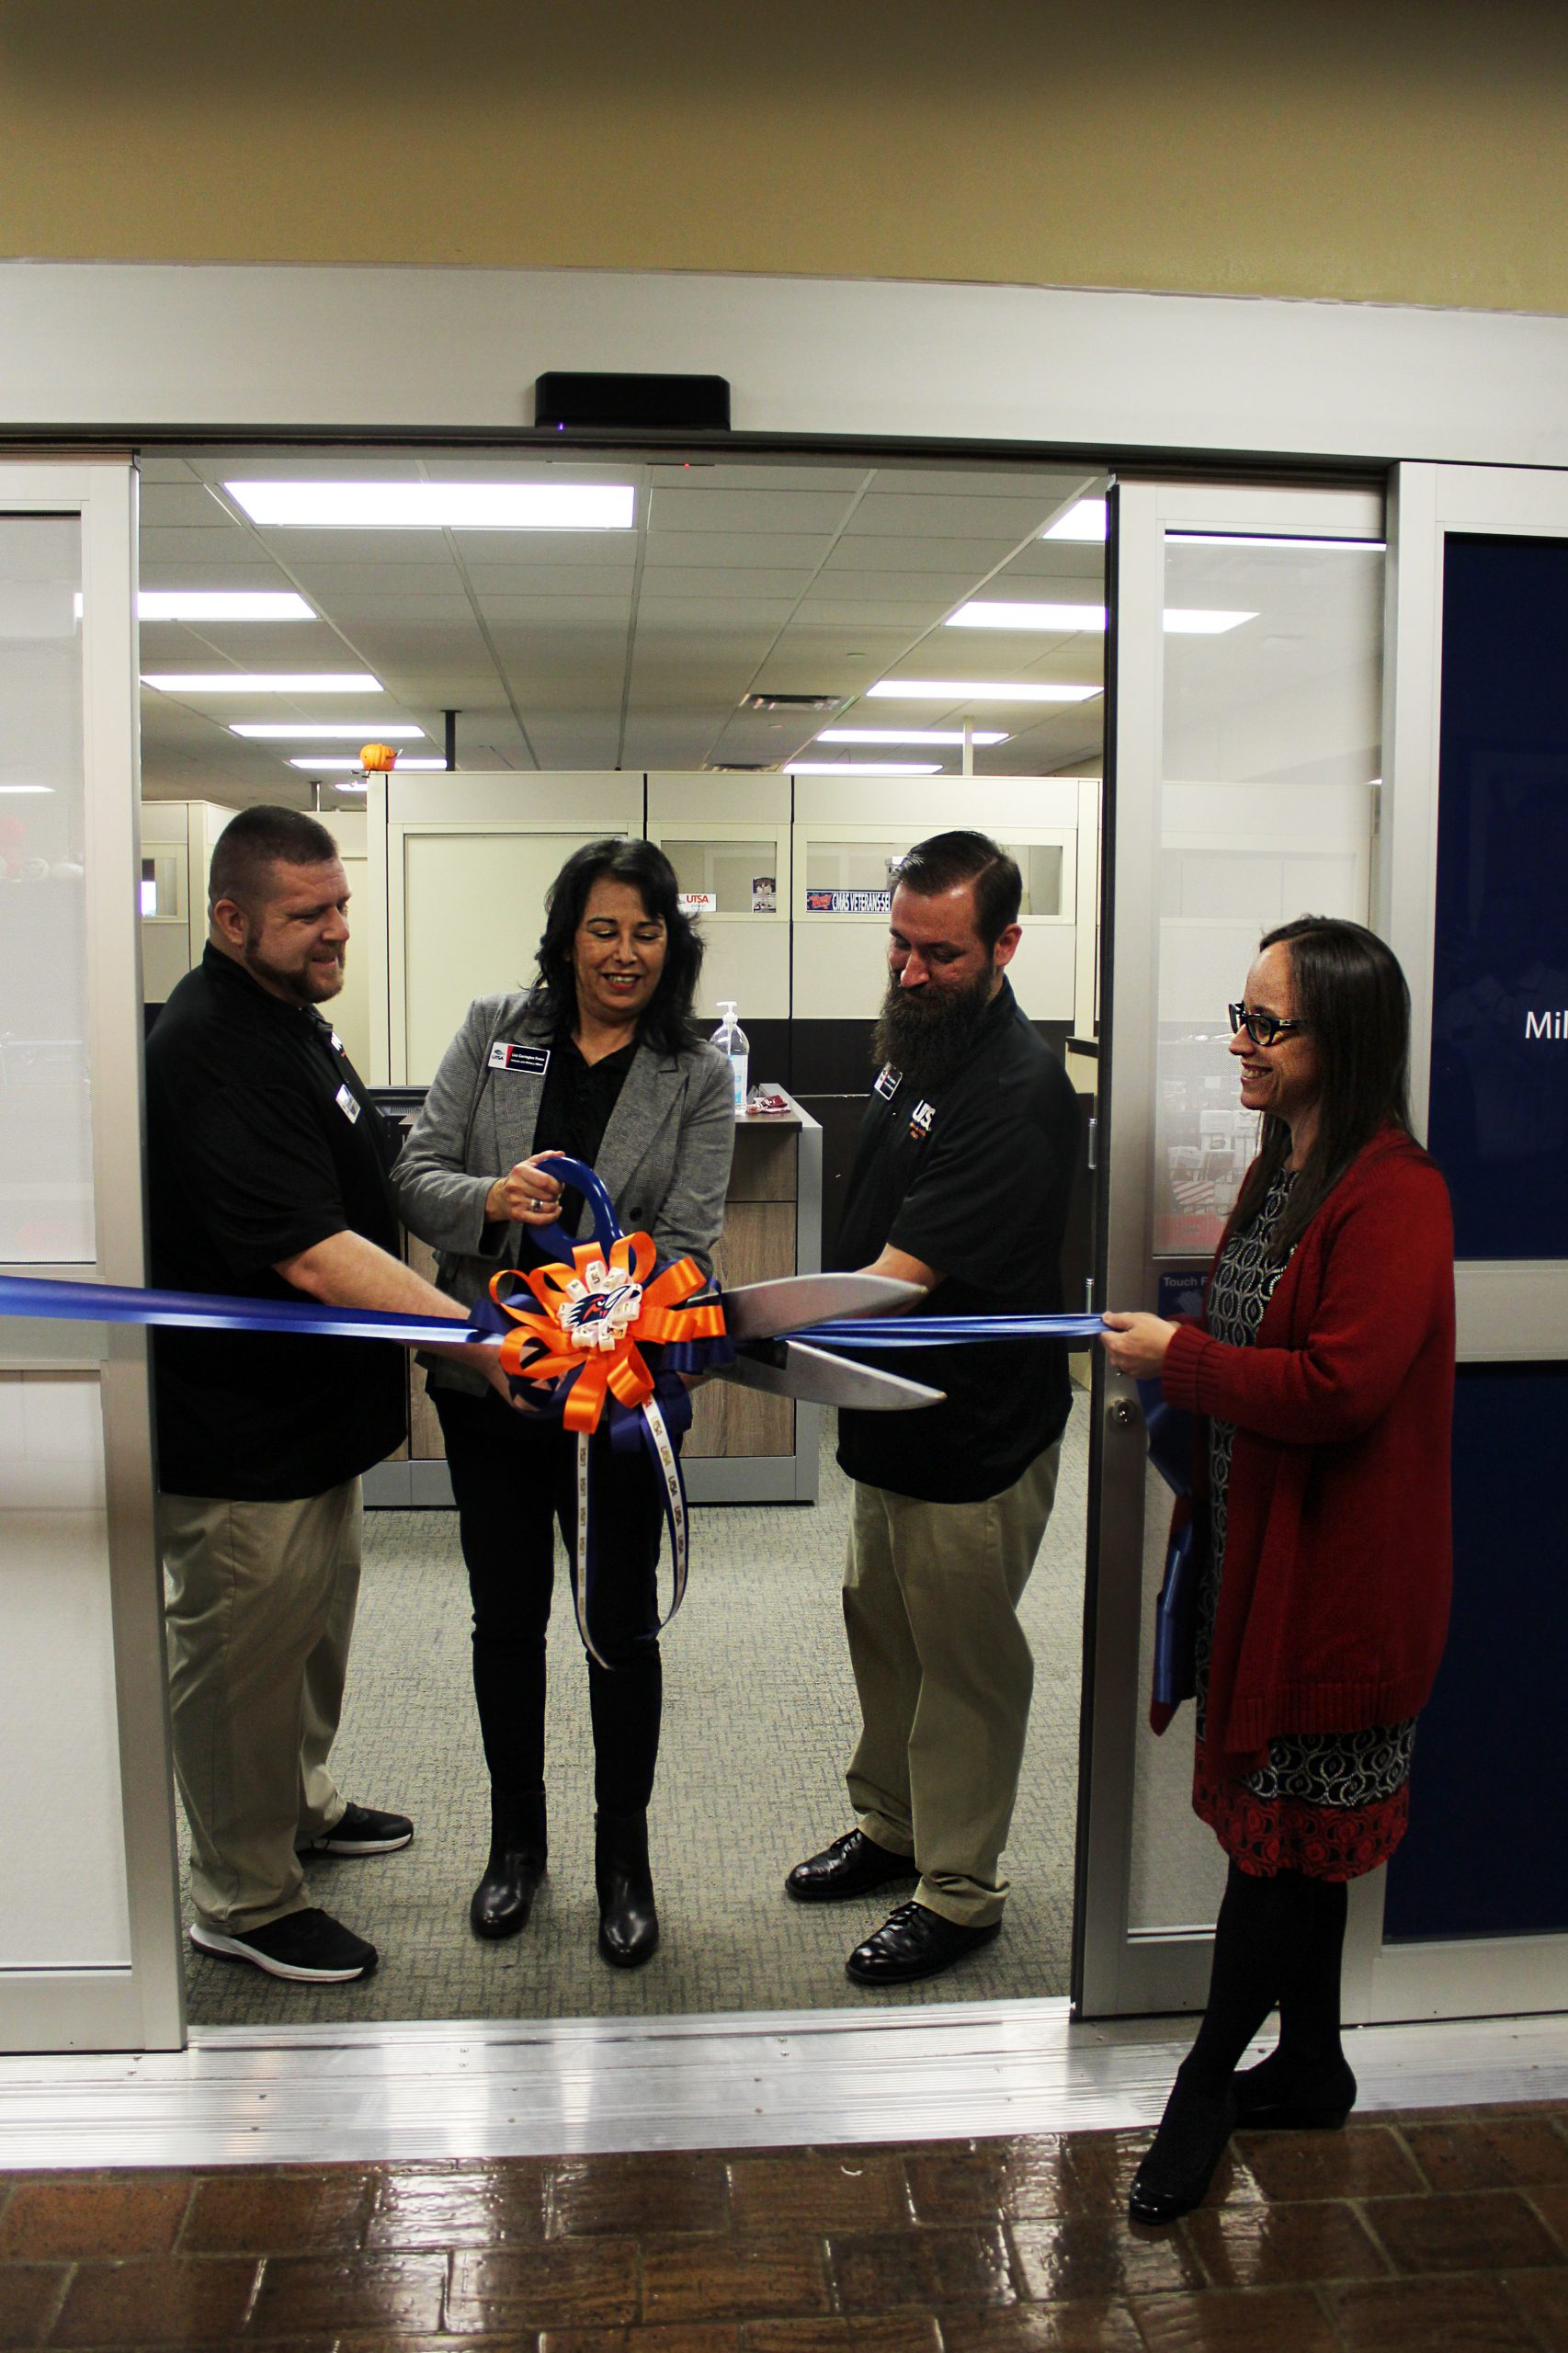 Ribbon cutting ceremony for veteran's center.Photo by Ethan Gullett